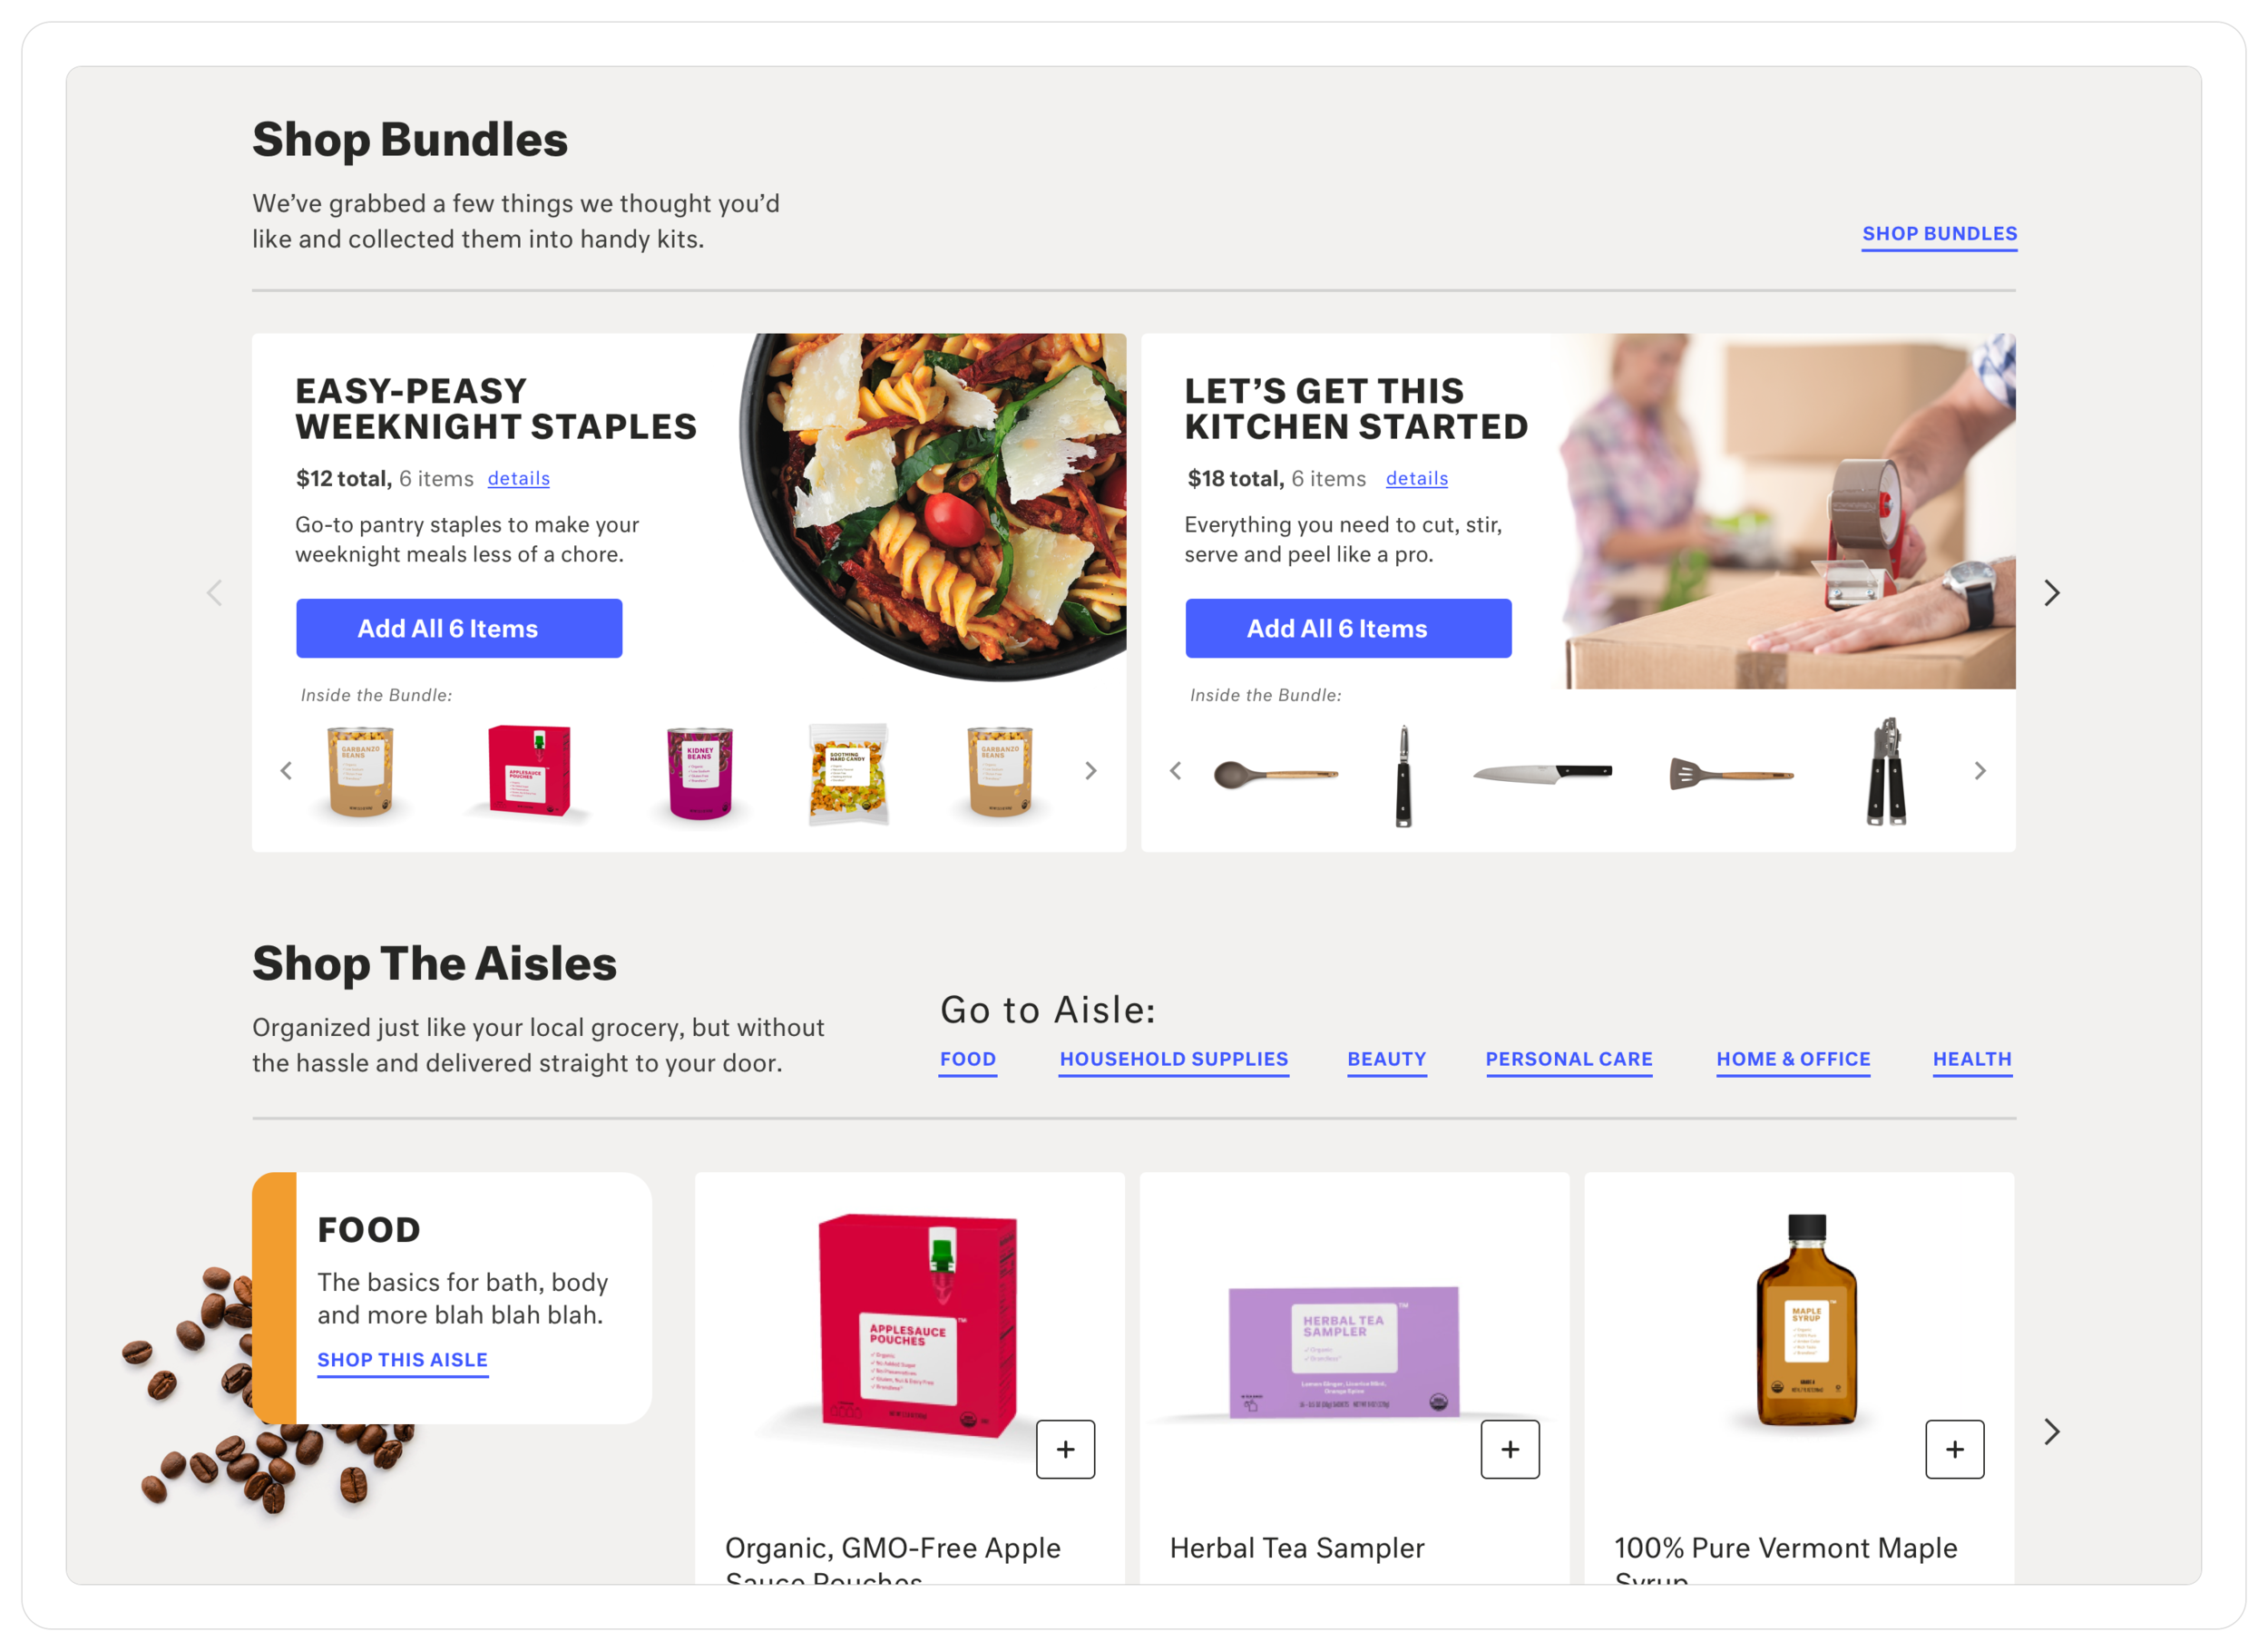 """The """"shop all"""" page acts as a summary view of the different categories of products offered. It also introduces the idea of """"kits"""" that allow the user to add various items at once to their basket."""